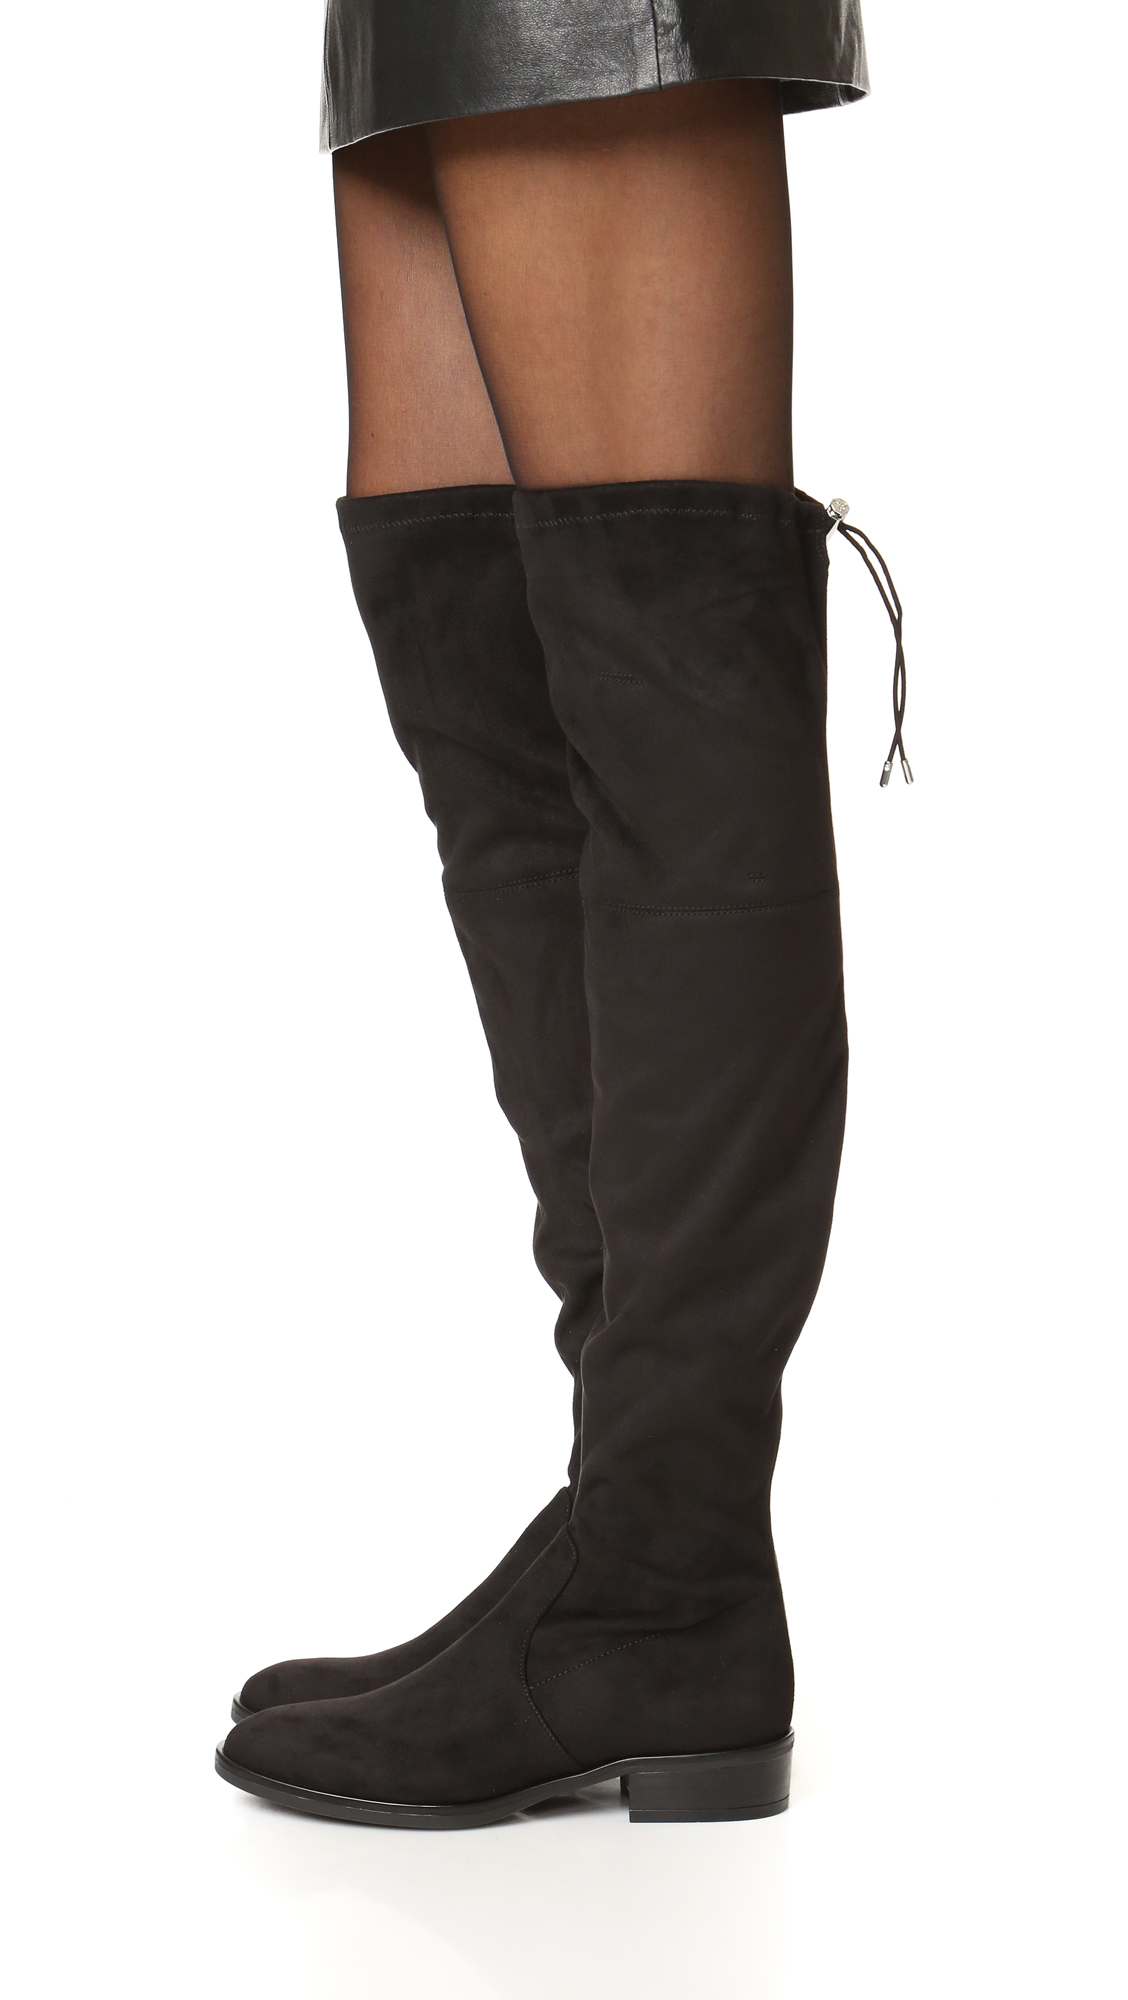 d3f00ca8031 Lyst - Sam Edelman Paloma Over The Knee Boots in Black